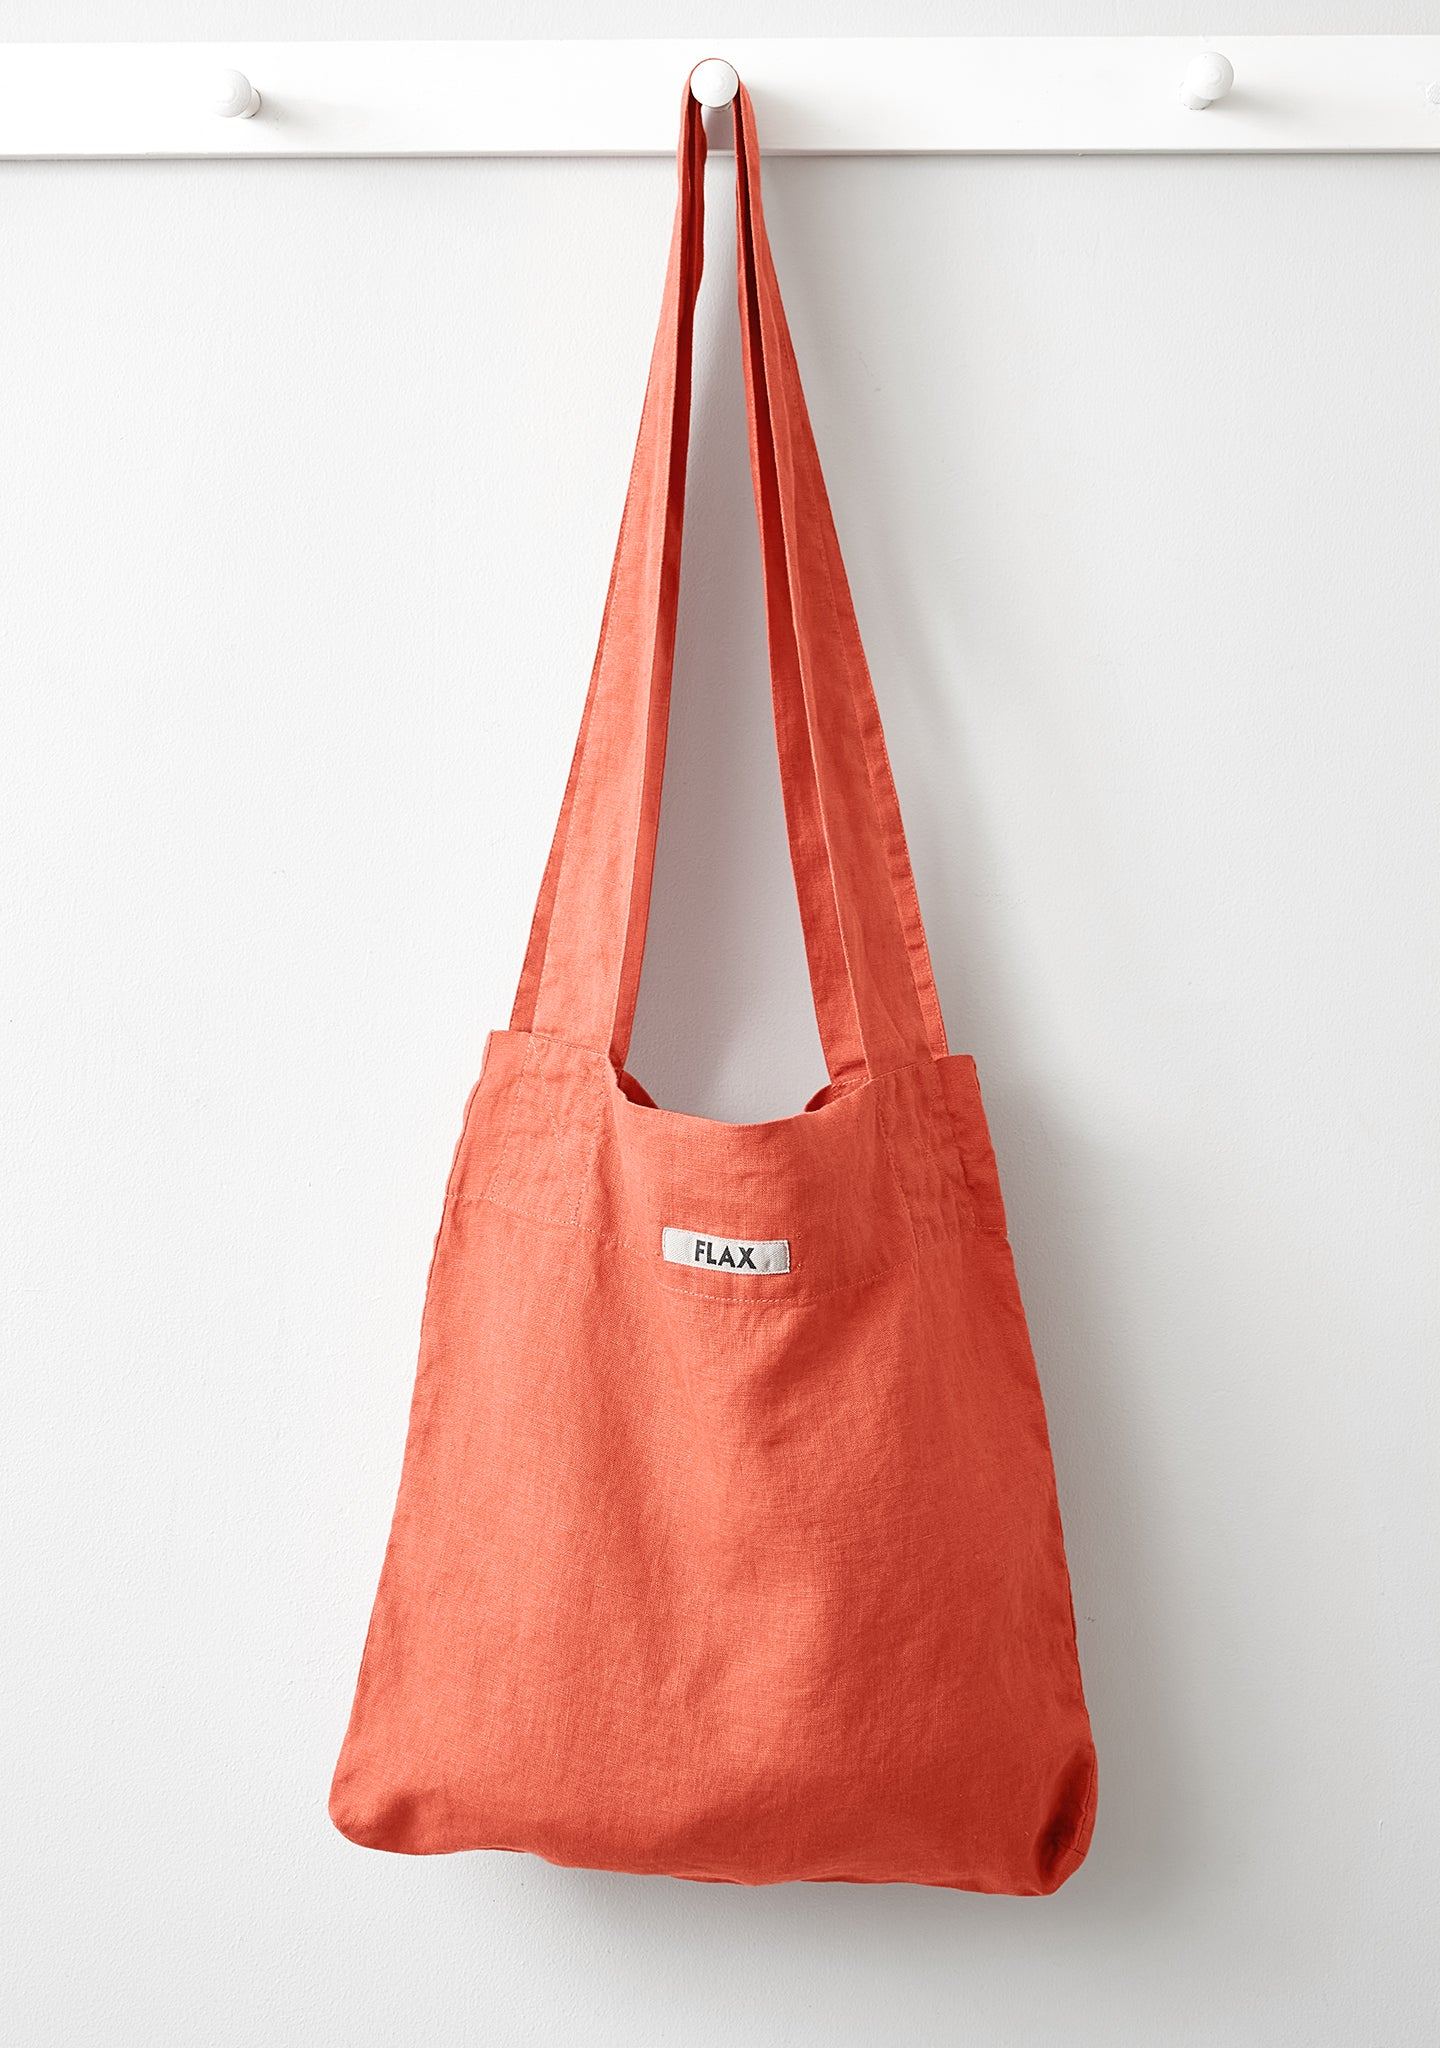 the bag linen shopping bag orange